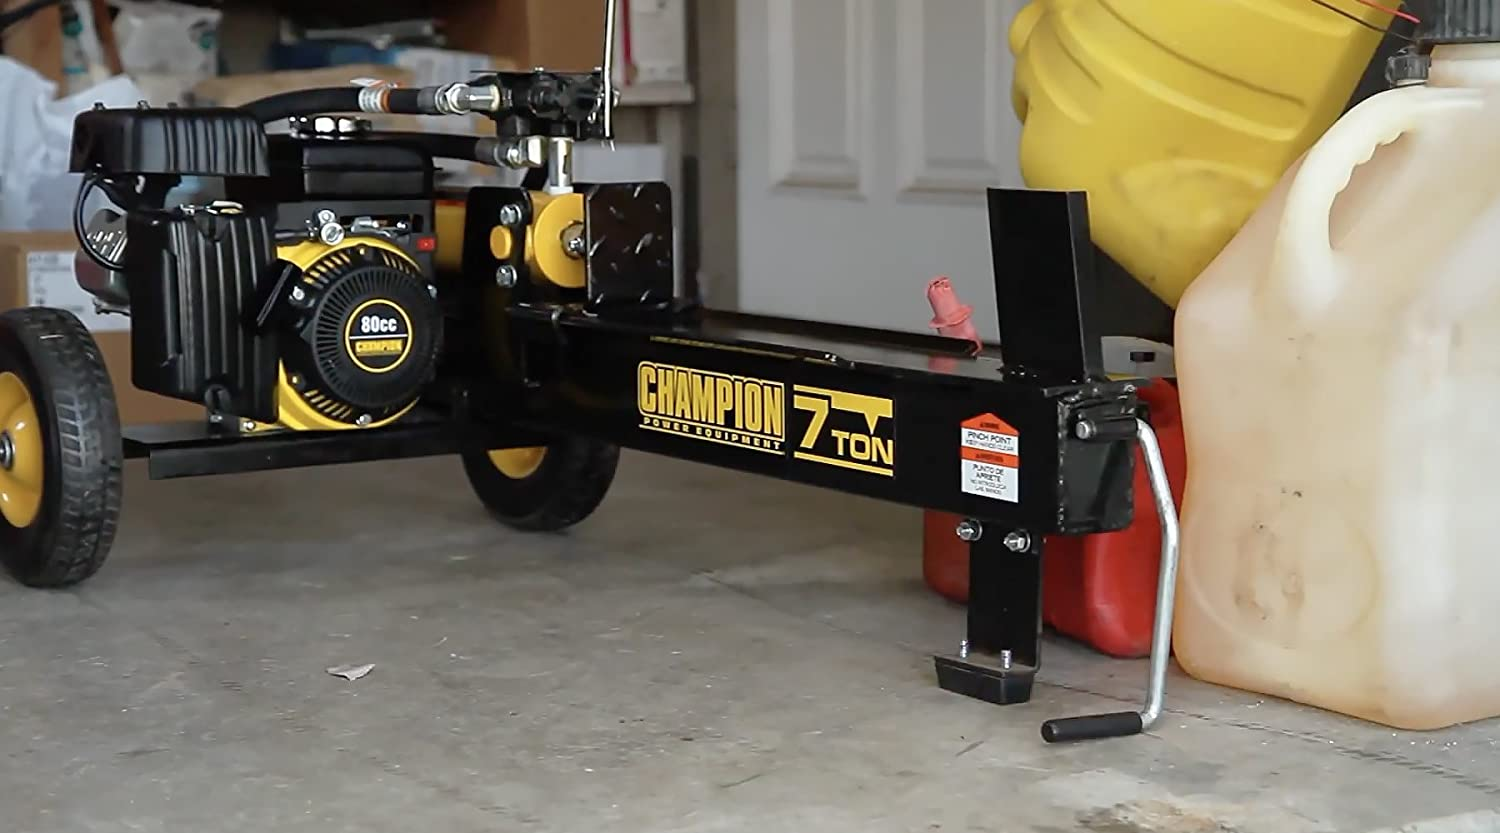 champion wood splitter reviews